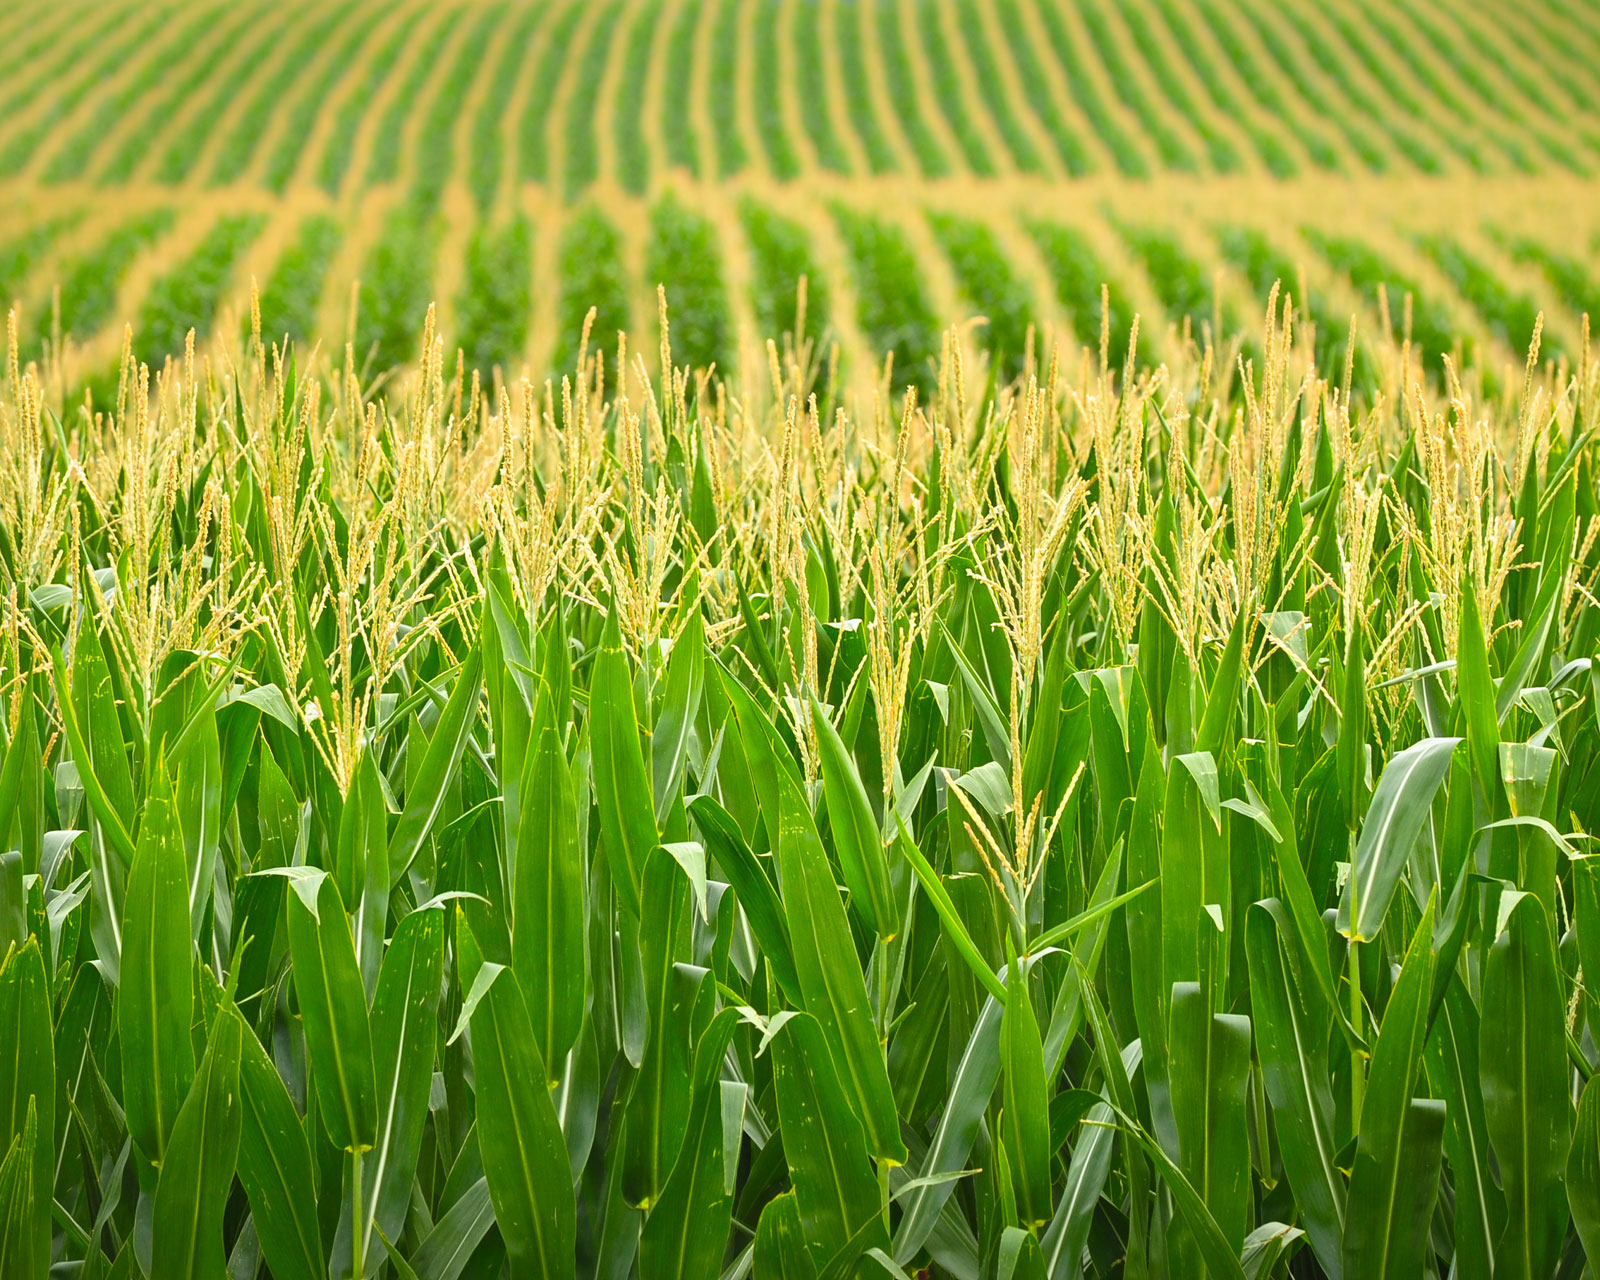 Corn and wheat prices in Chicago slid before USDA report - 11.02.2020